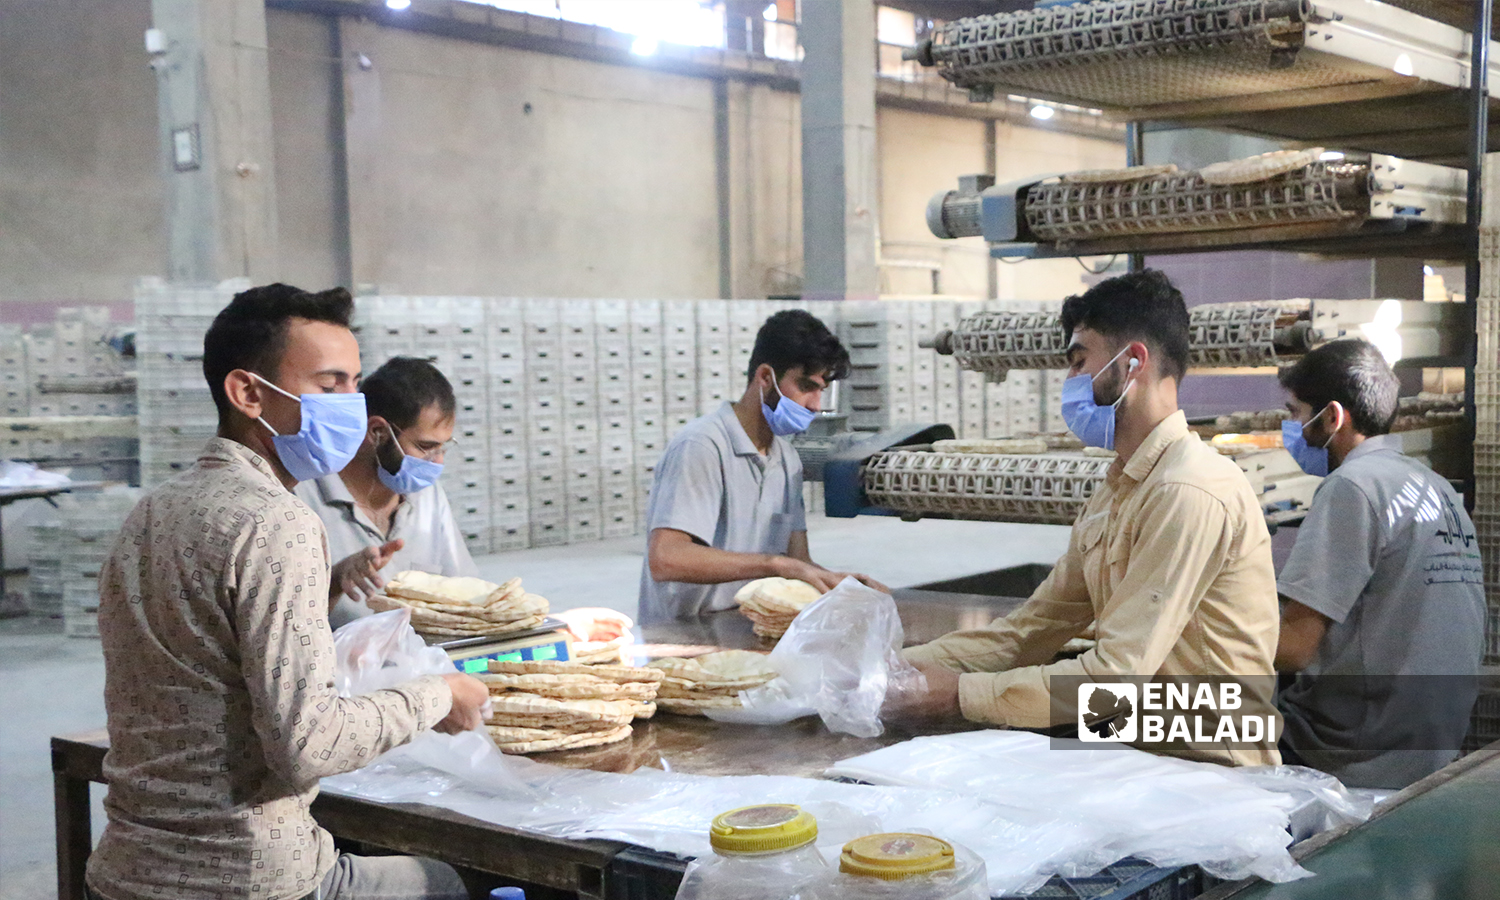 Workers packing bread in bags on the first production line of the al-Bab city's automated bakery - 8 October 2021 (Enab Baladi - Siraj Mohammed)